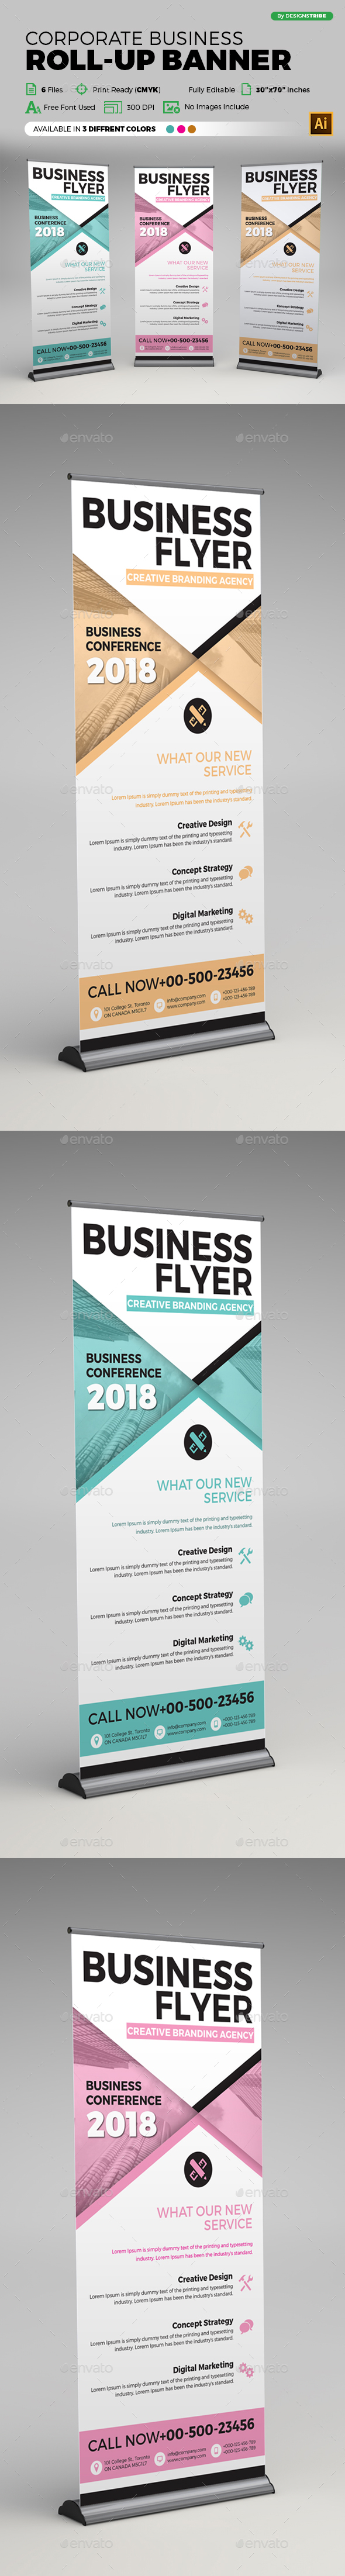 GraphicRiver Corporate Business Roll-up Banner 21186686